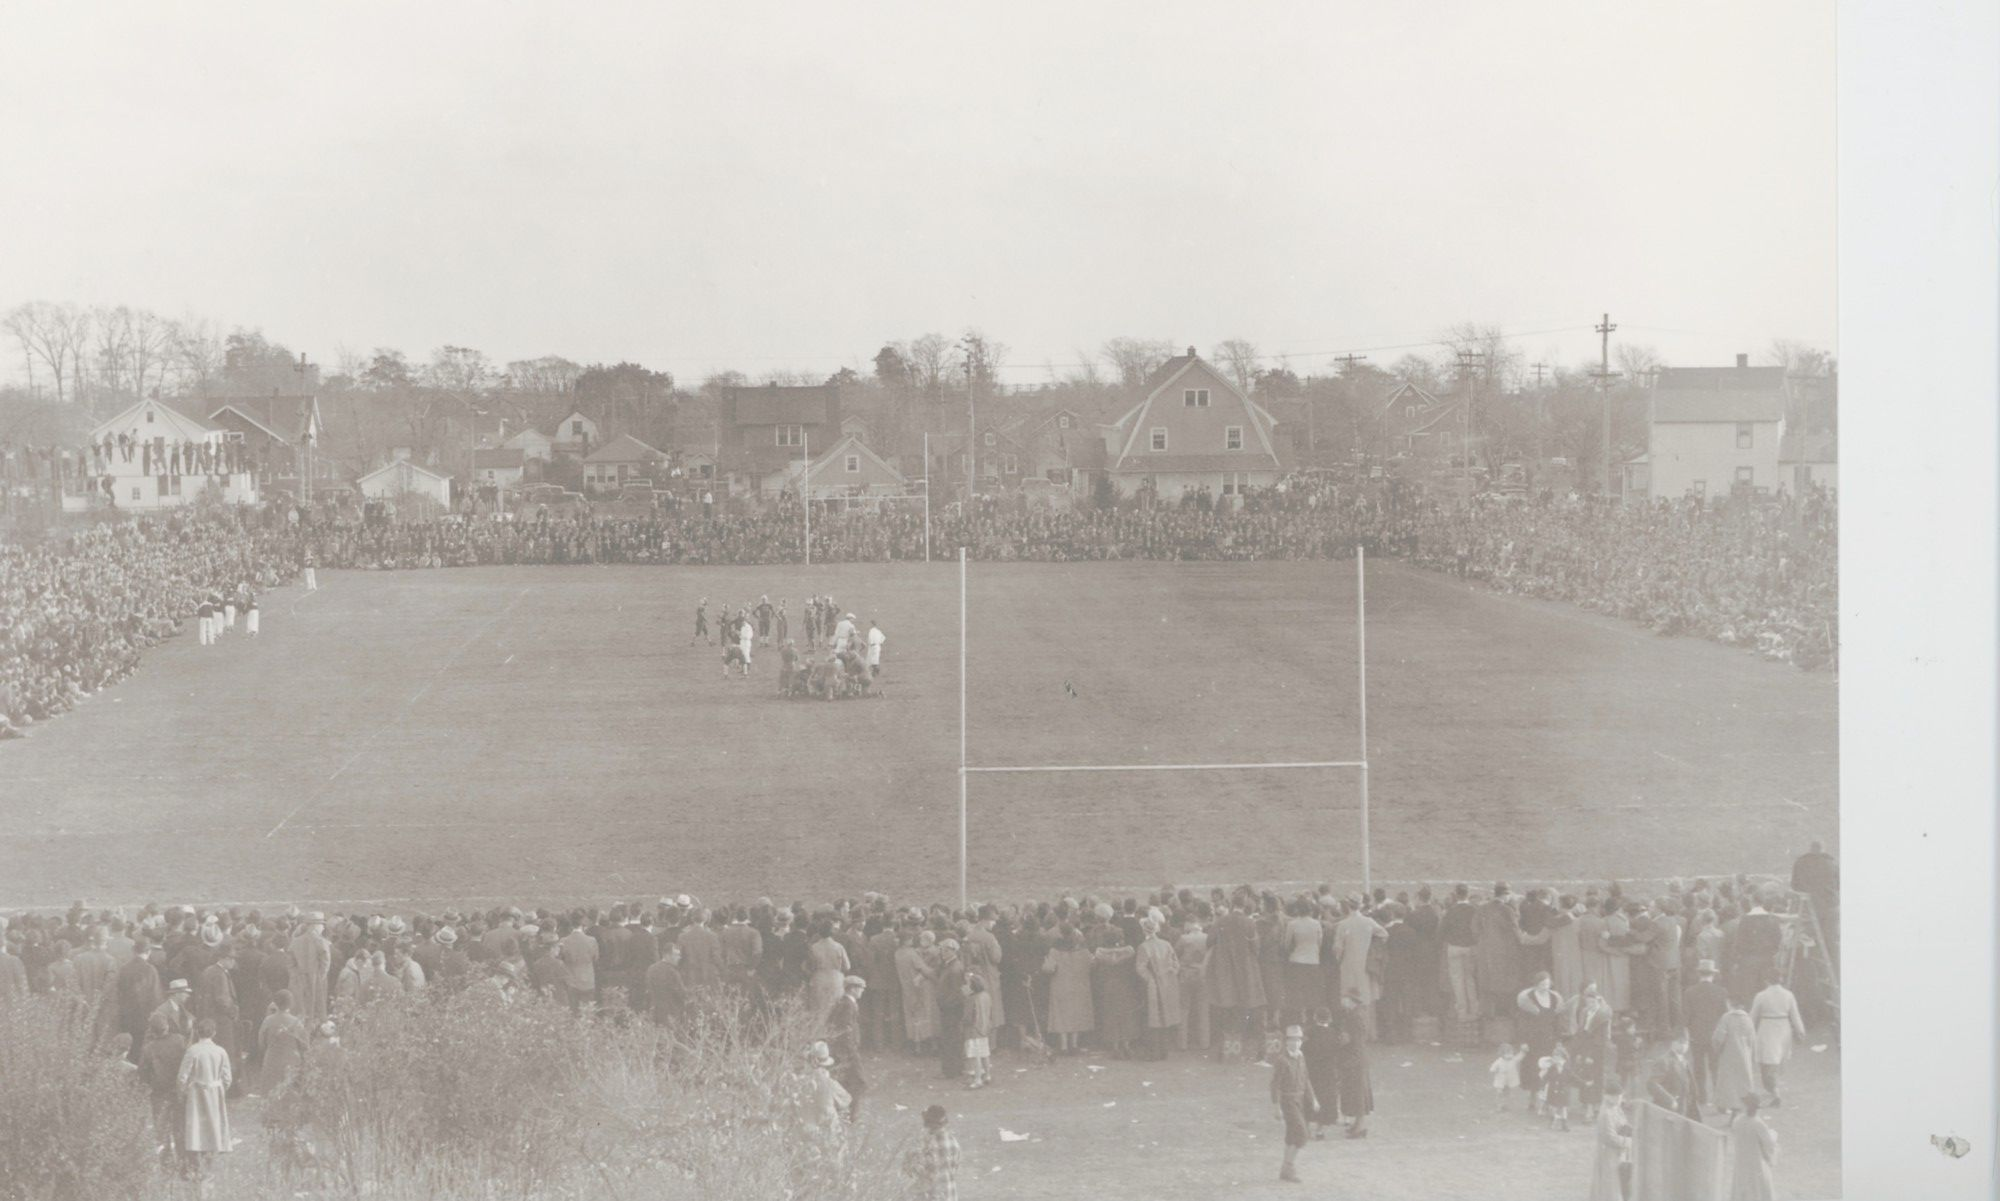 This Freeport/Baldwin game was held at the steele School in 1937